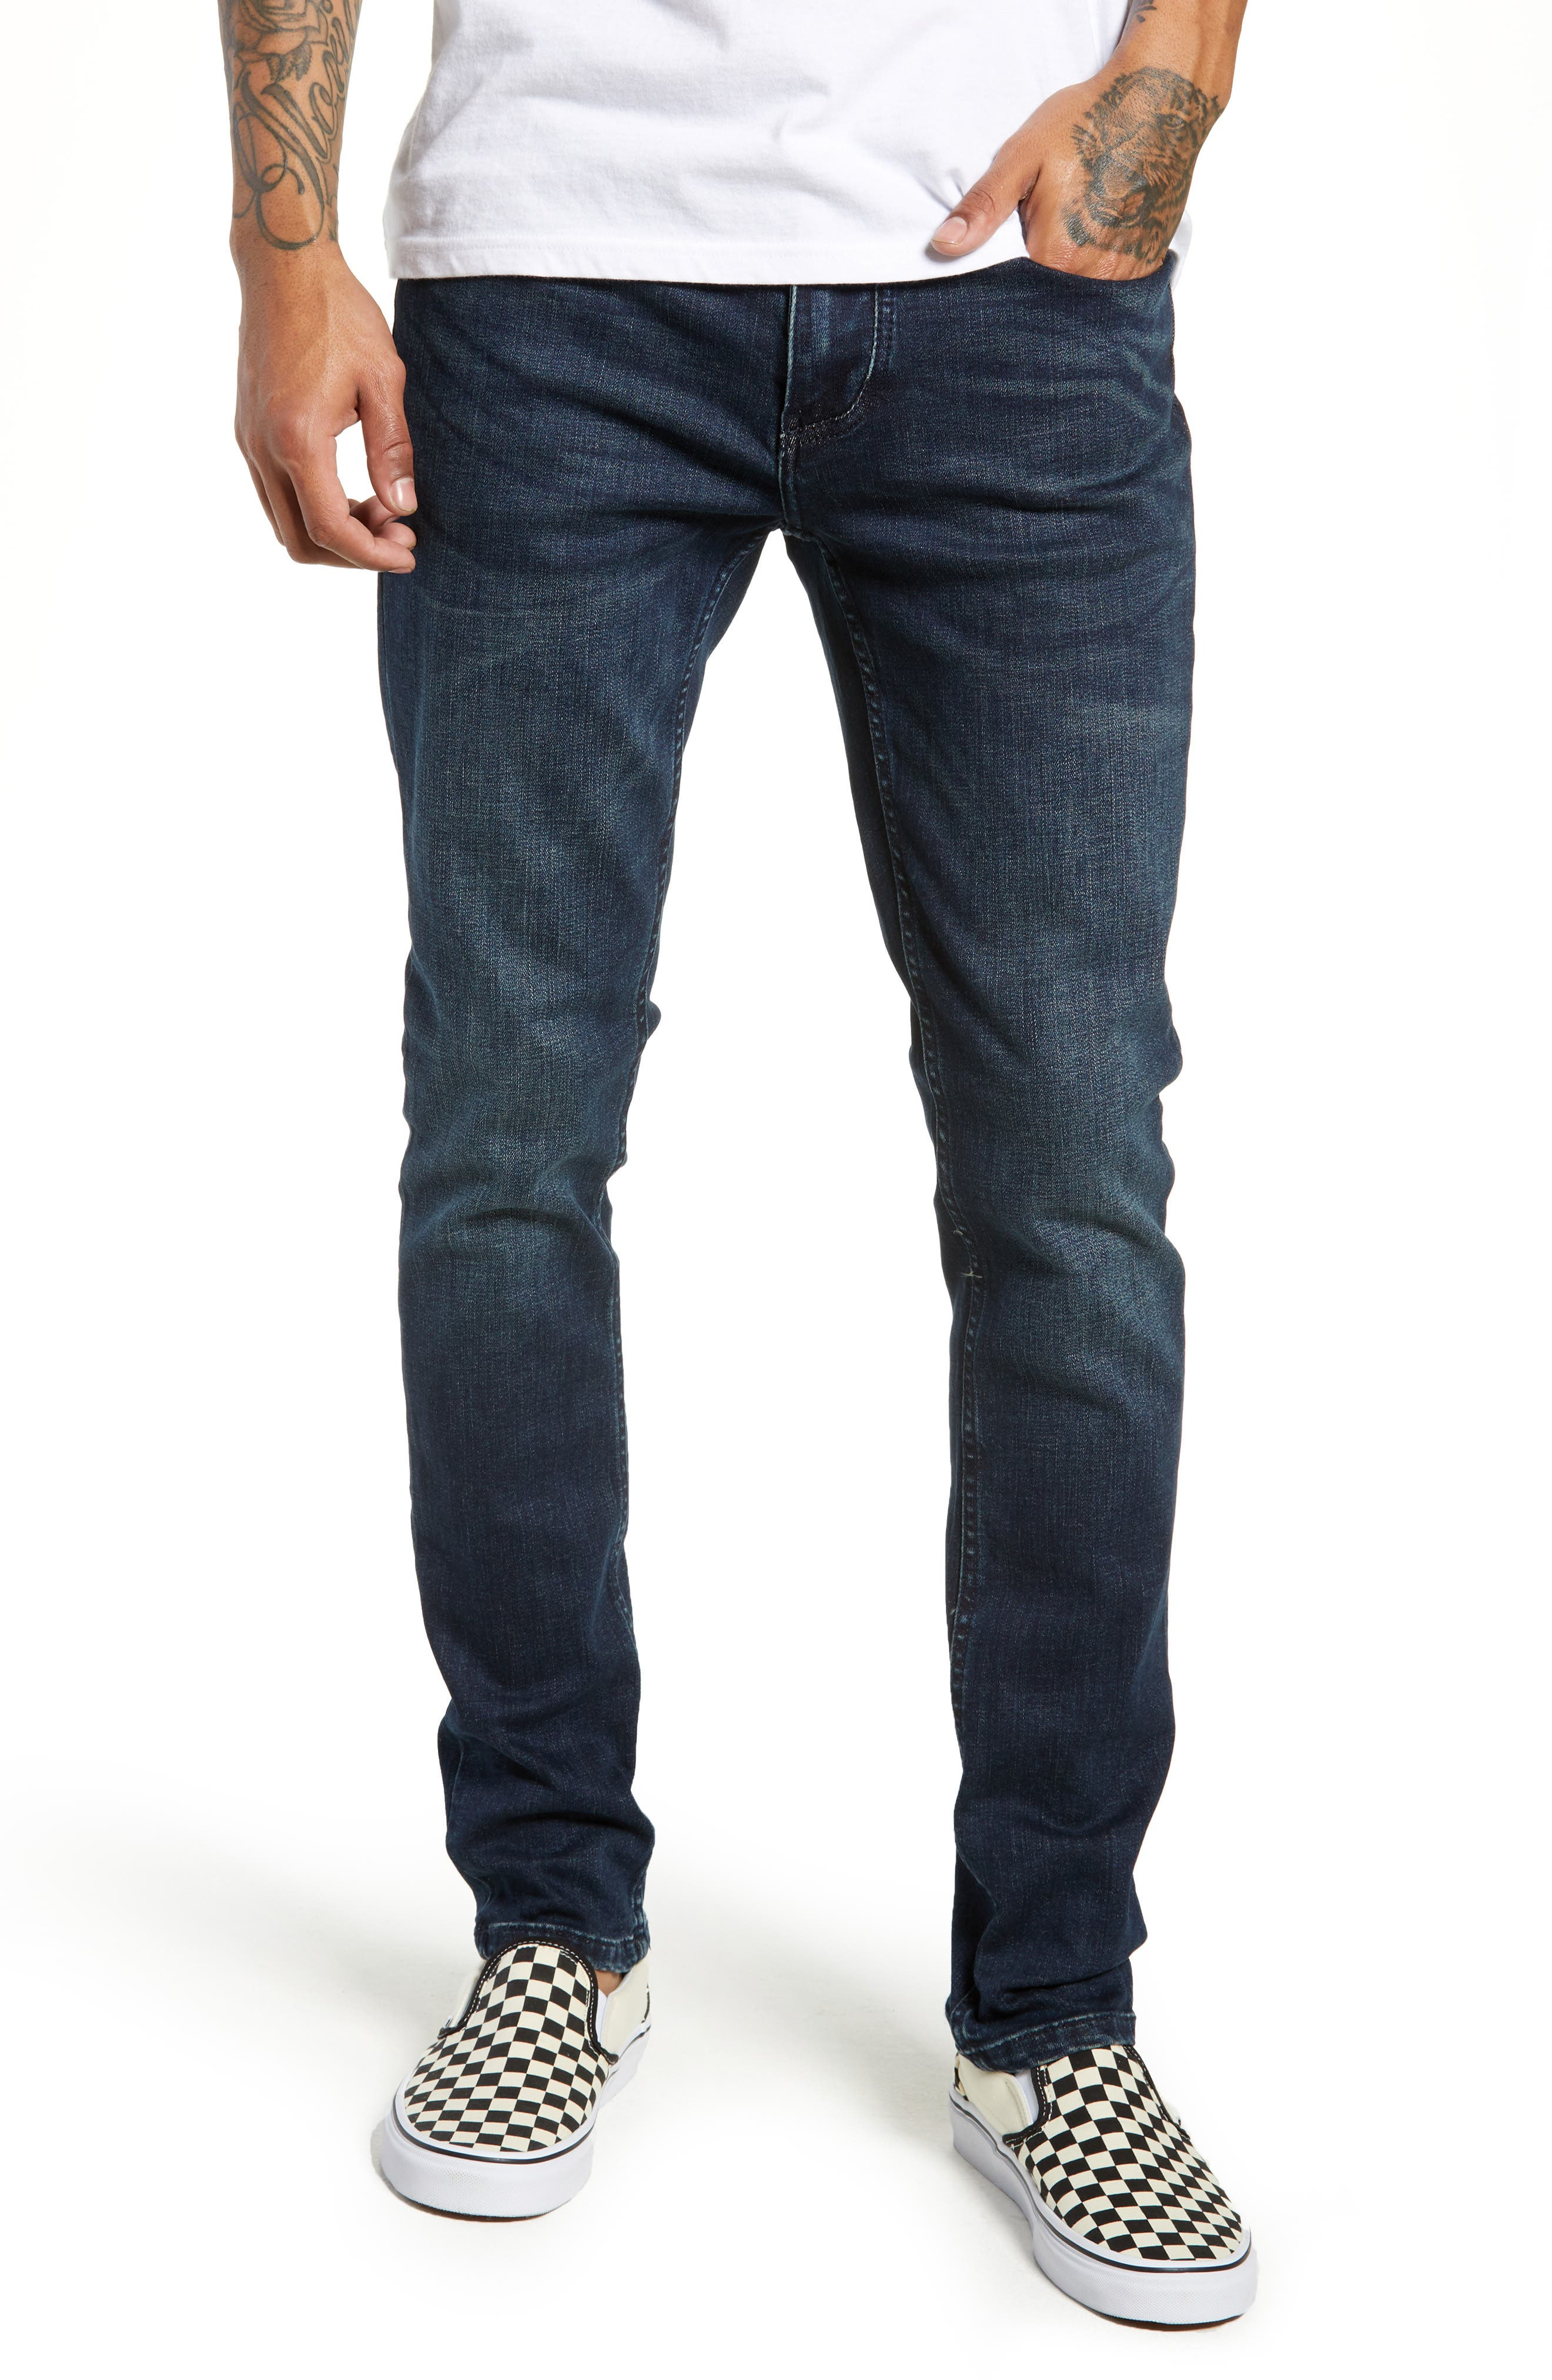 Horatio Skinny Fit Jeans,                         Main,                         color, 425